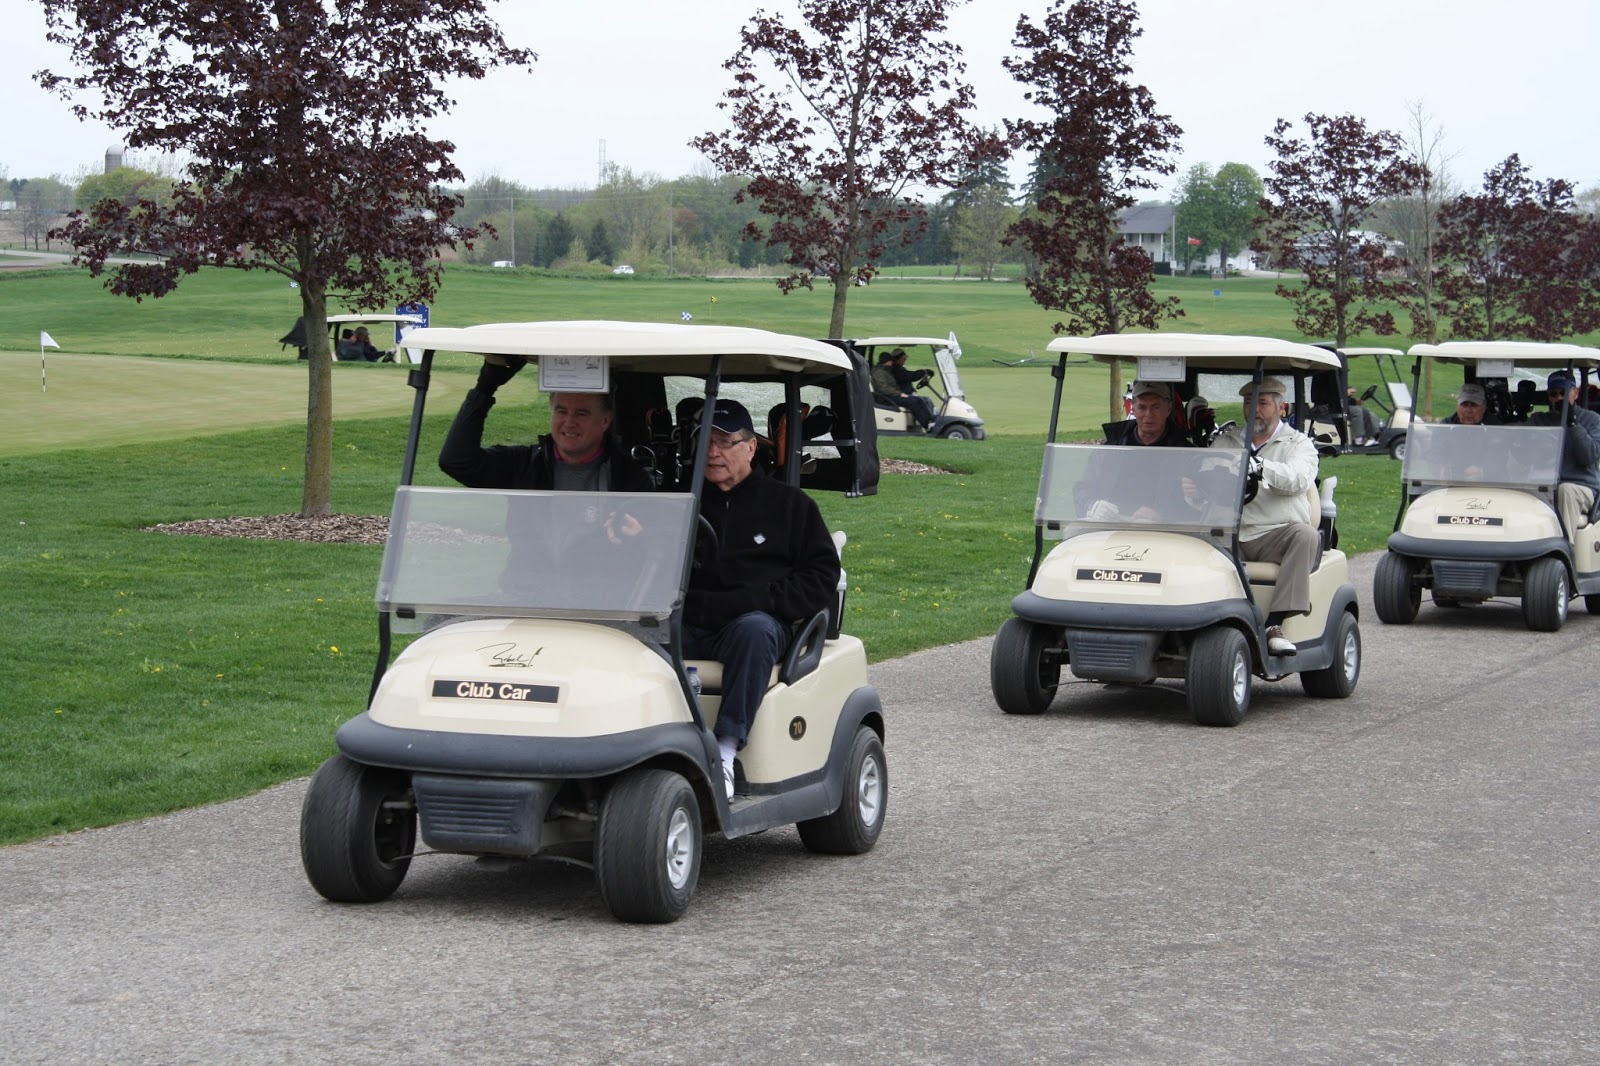 Drive to Deliver Golf Tournament : A Thank You to Our Golfers ... on golf hole 8, golf lunch sponsor, beverage cart sponsor, golf hole sponsor,